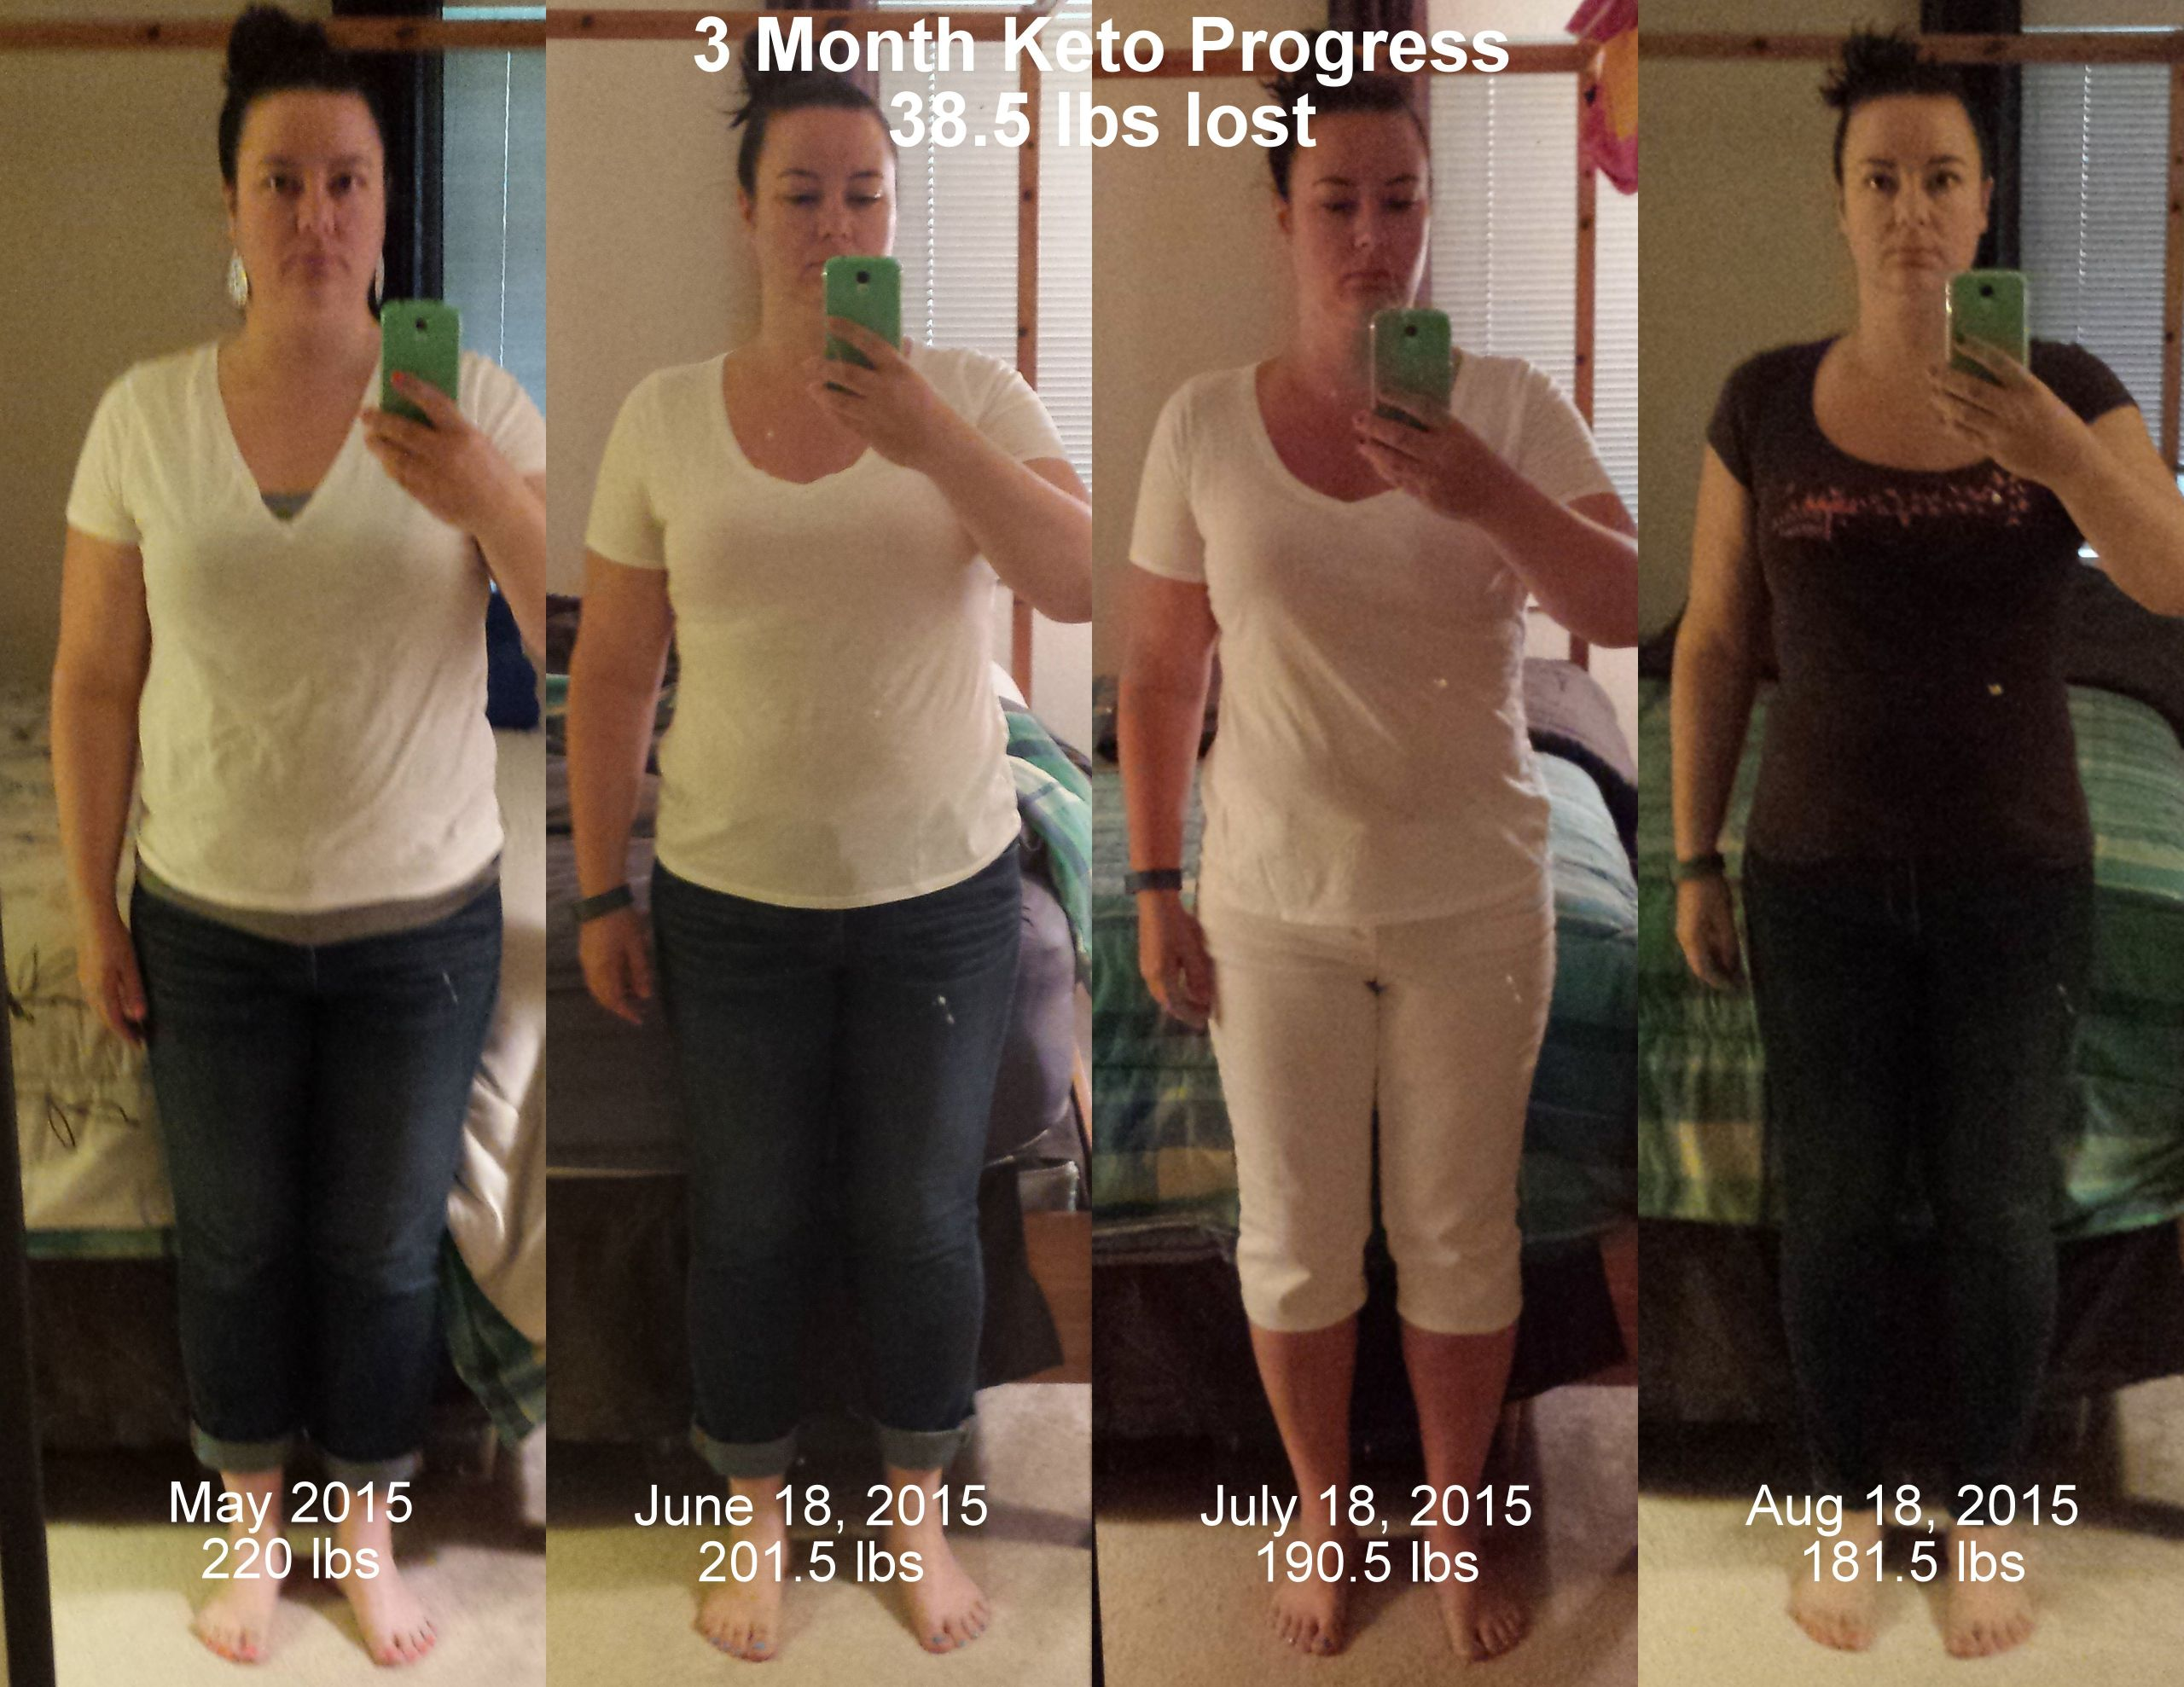 Ketosis Diet Results  3 Month Update on My Ketogenic Diet Experiment